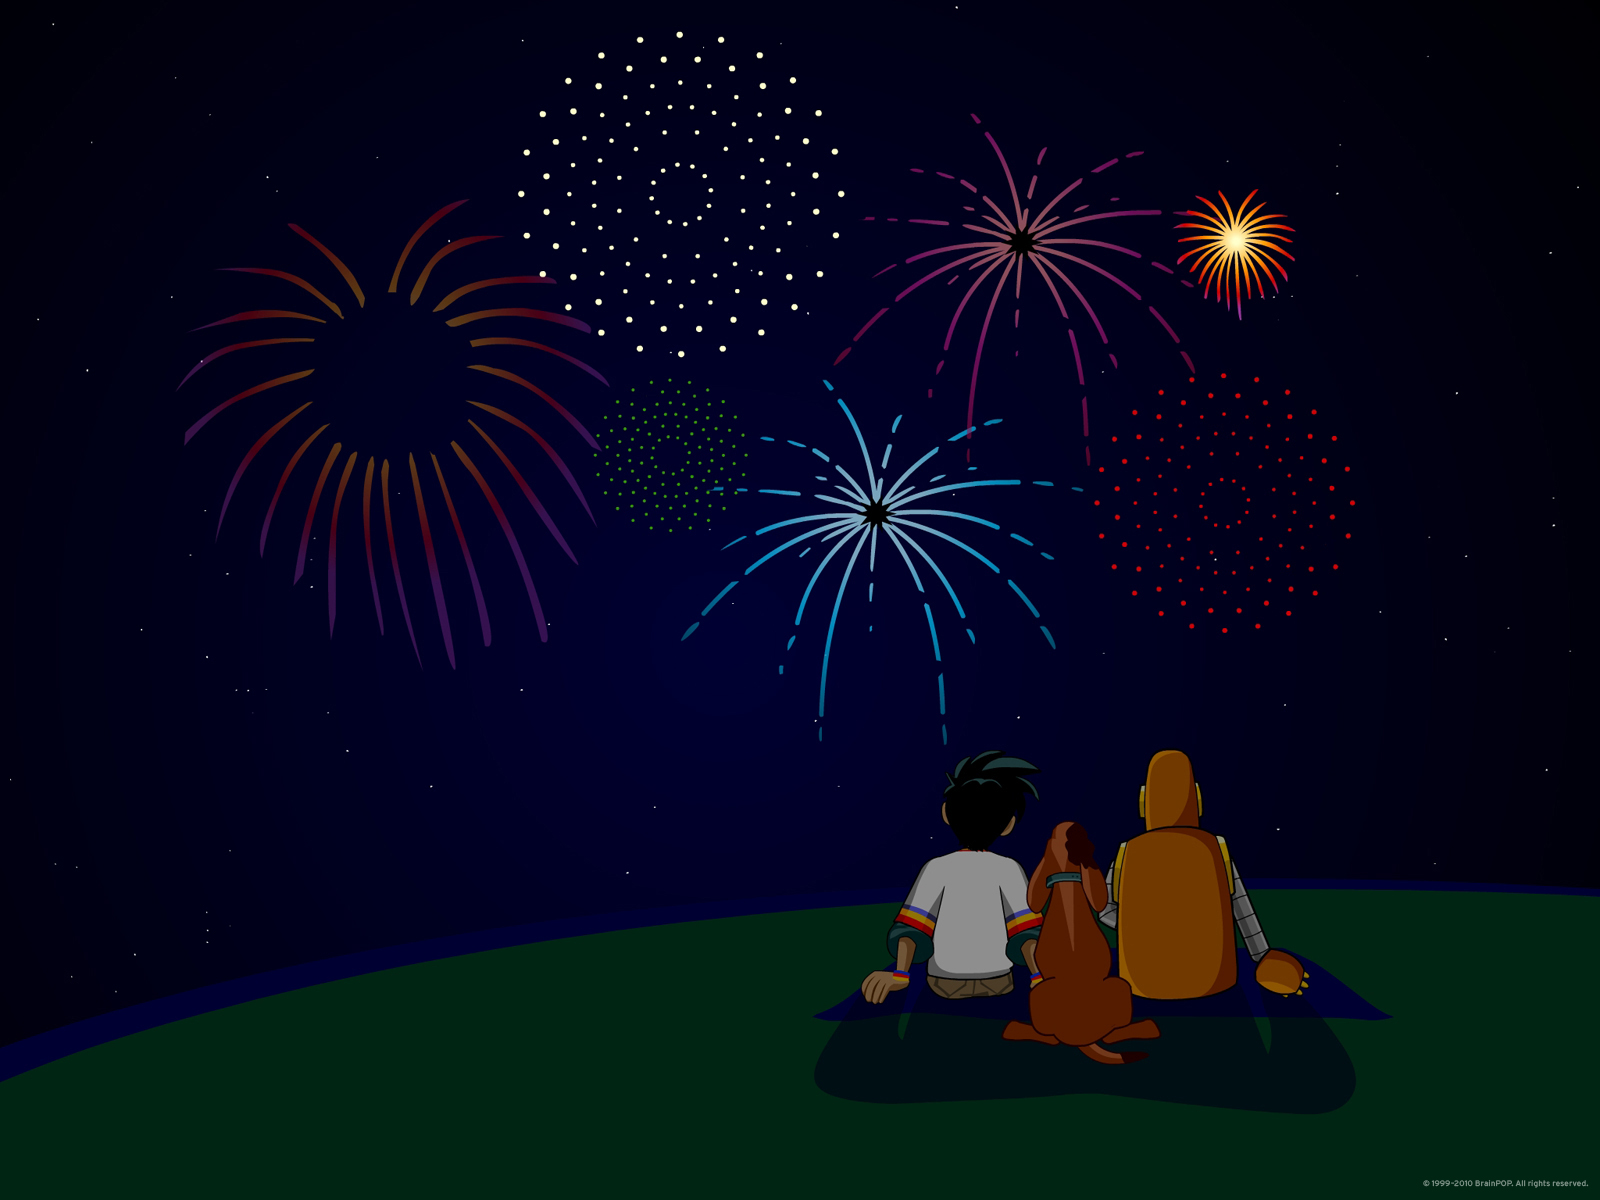 Moby and Ben Fireworks Wallpaper